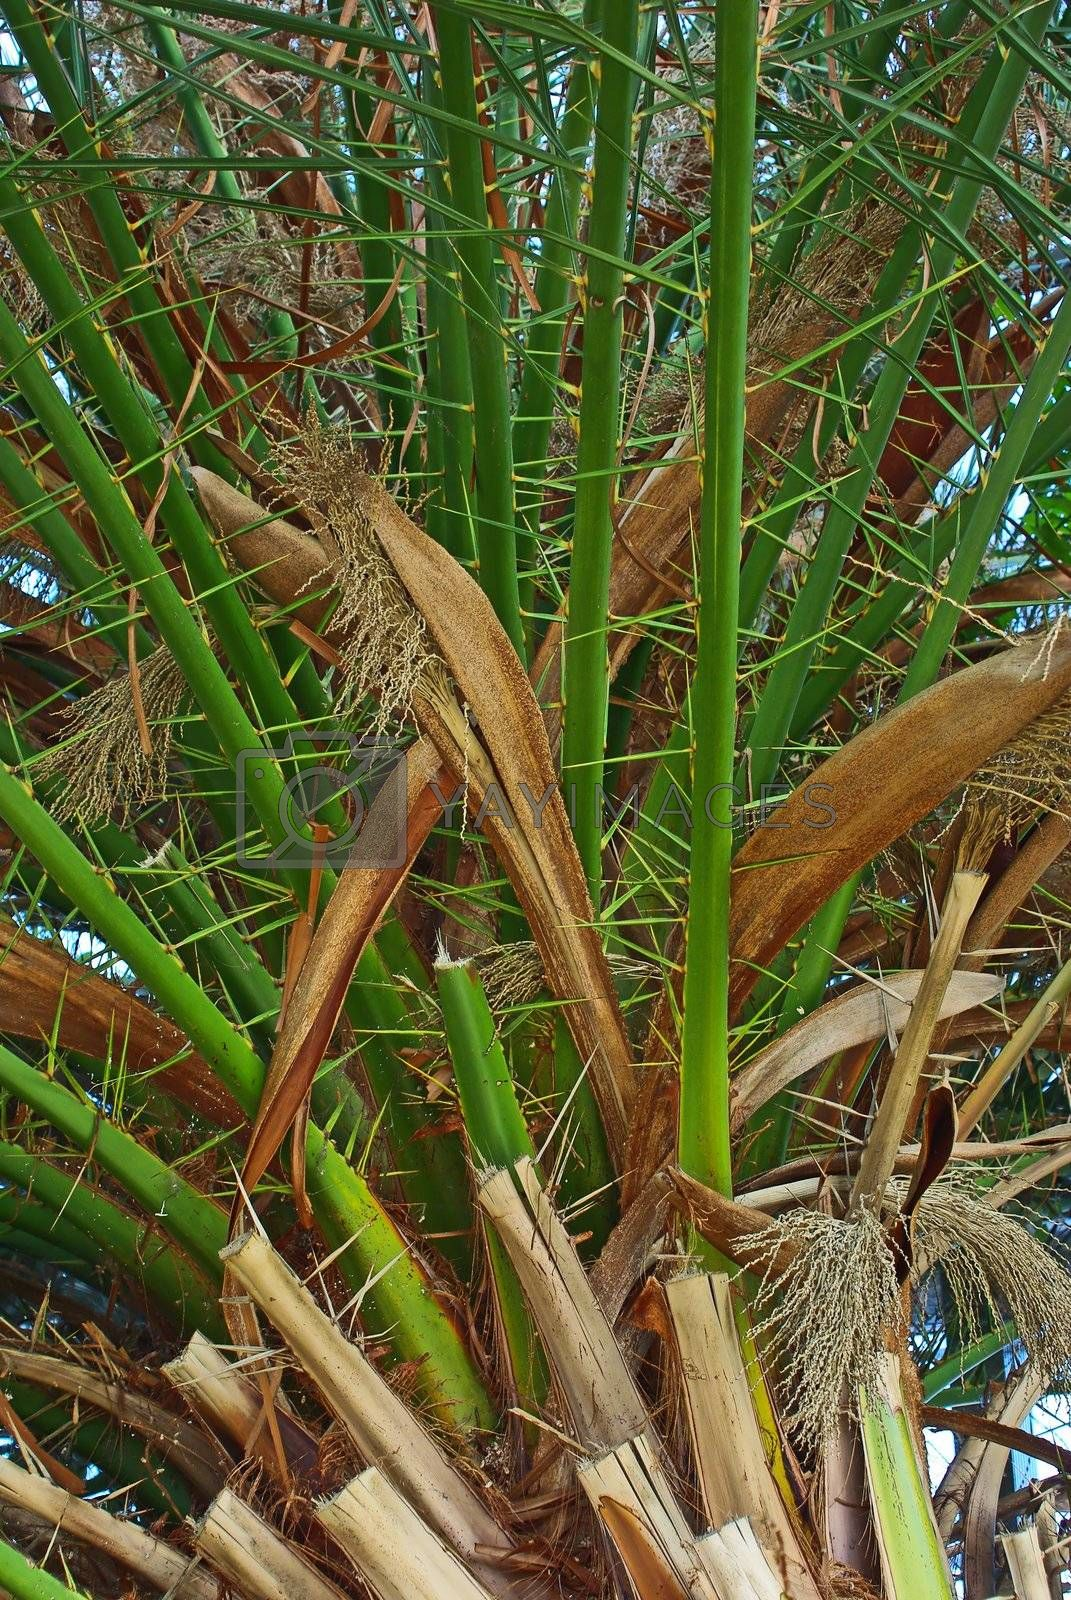 Palm tree in bloom close up image